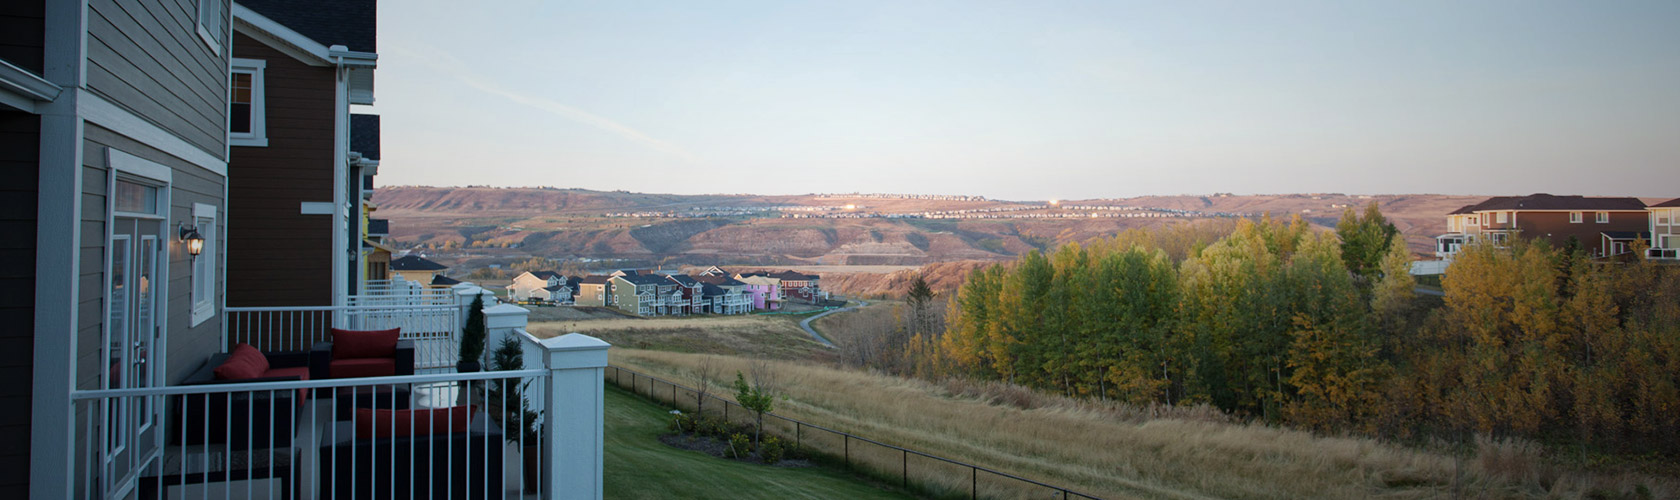 cochrane community view